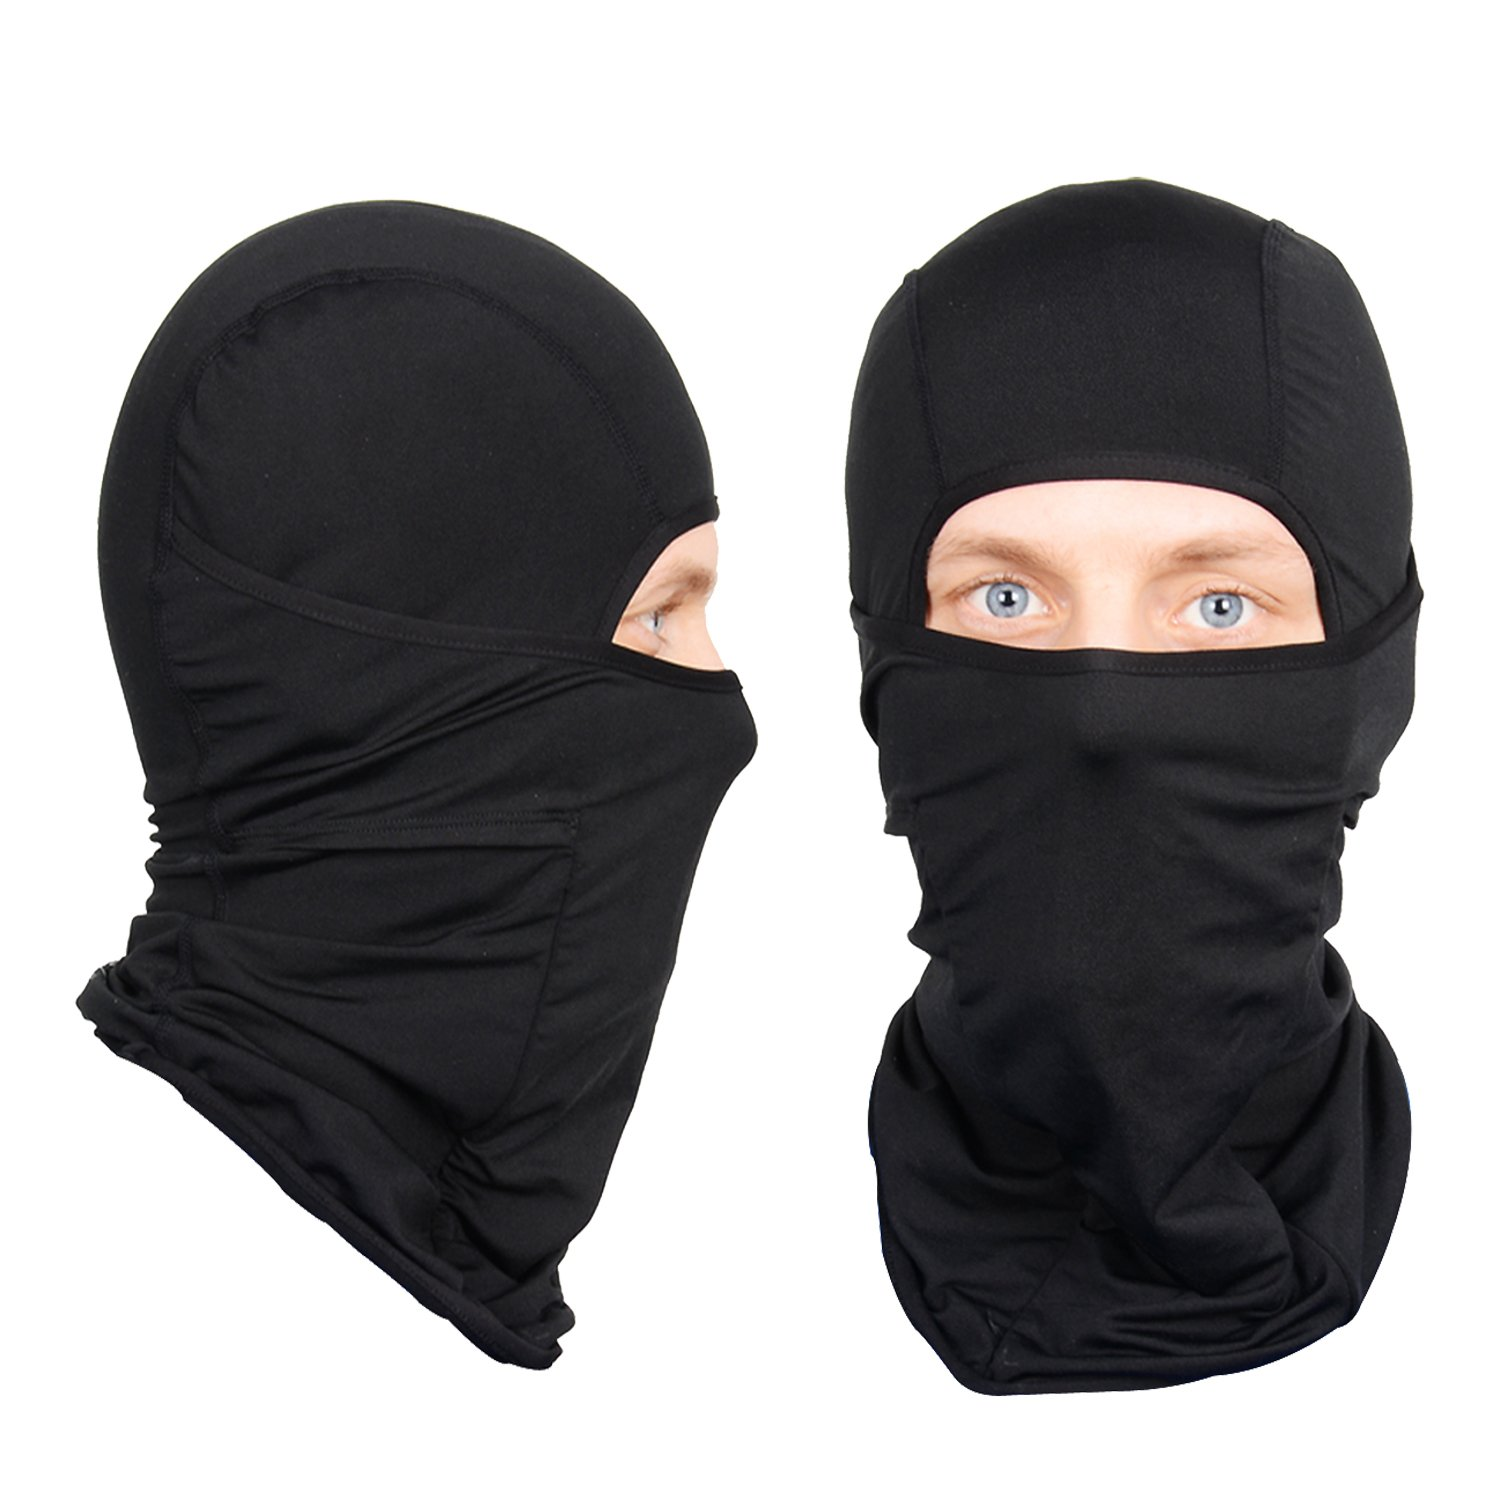 Nordic Balaclava 2-Pack Face Mask Motorcycle Helmets Liner Ski Gear Neck Gaiter Ski Mask Accessories by The Friendly Swede (Black Nordic)